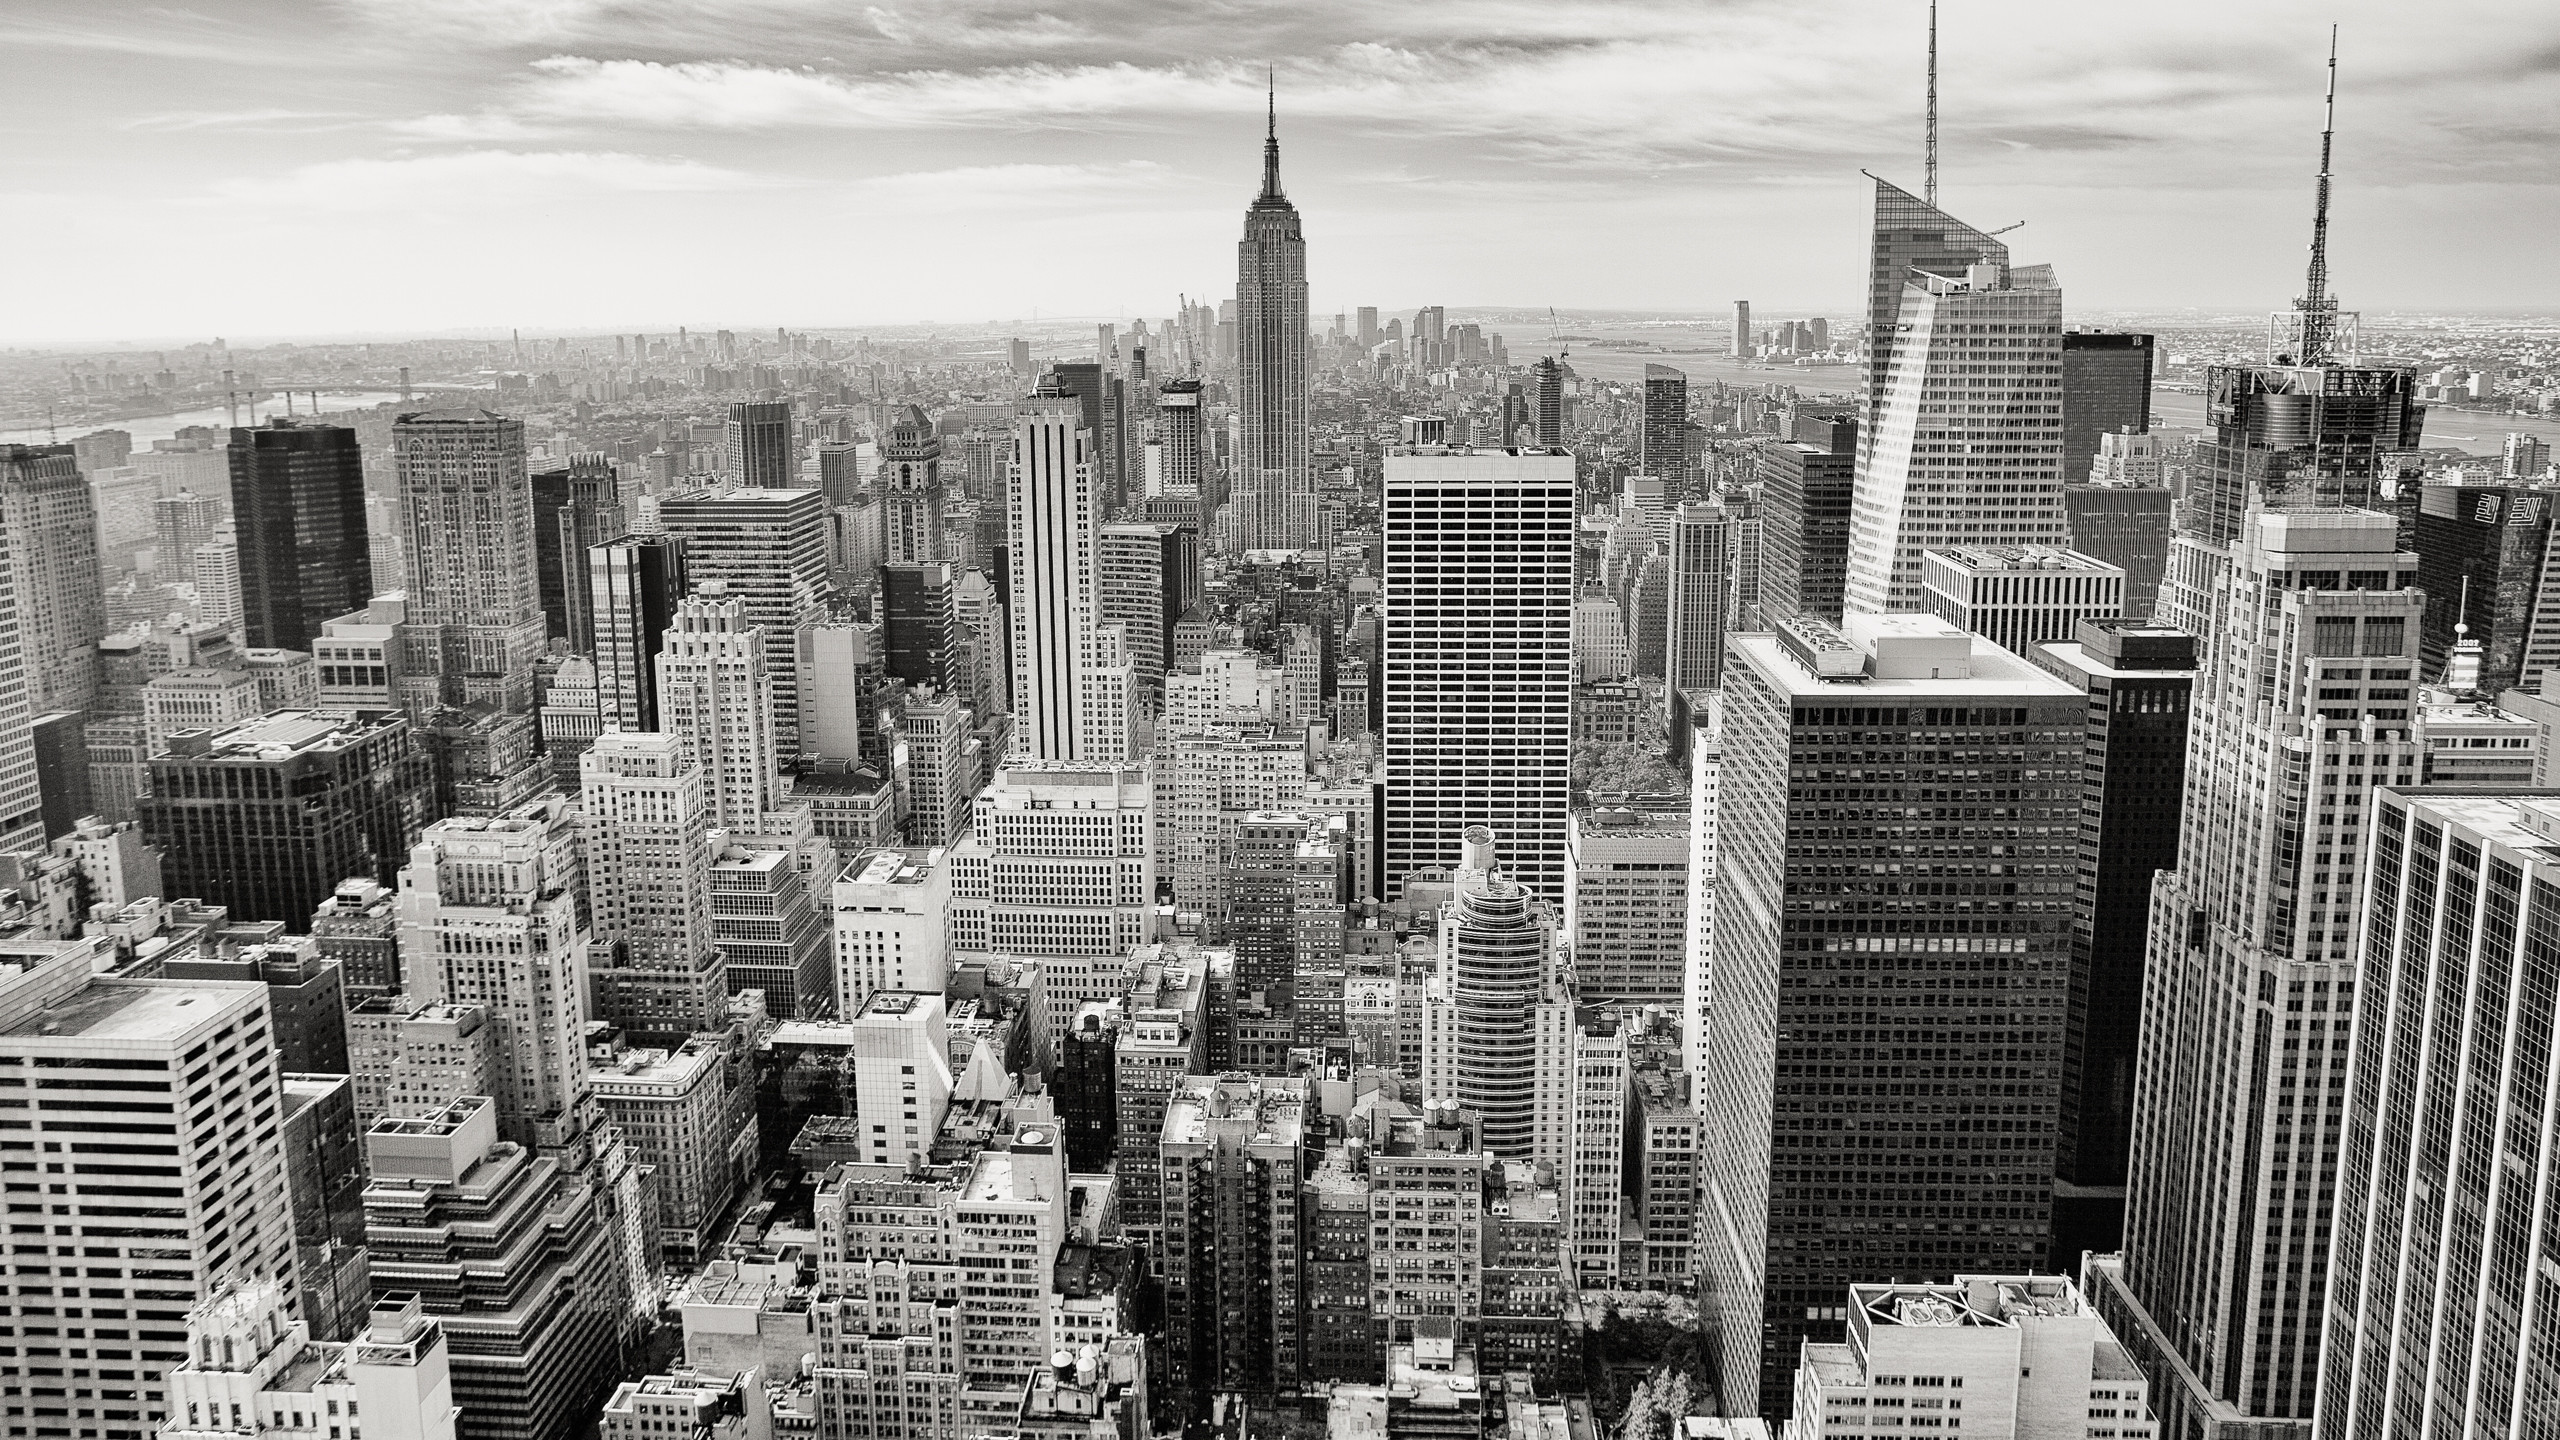 2560x1440 New york city wallpaper black and white. Free stock photo of aerial,  black-and-white, buildings